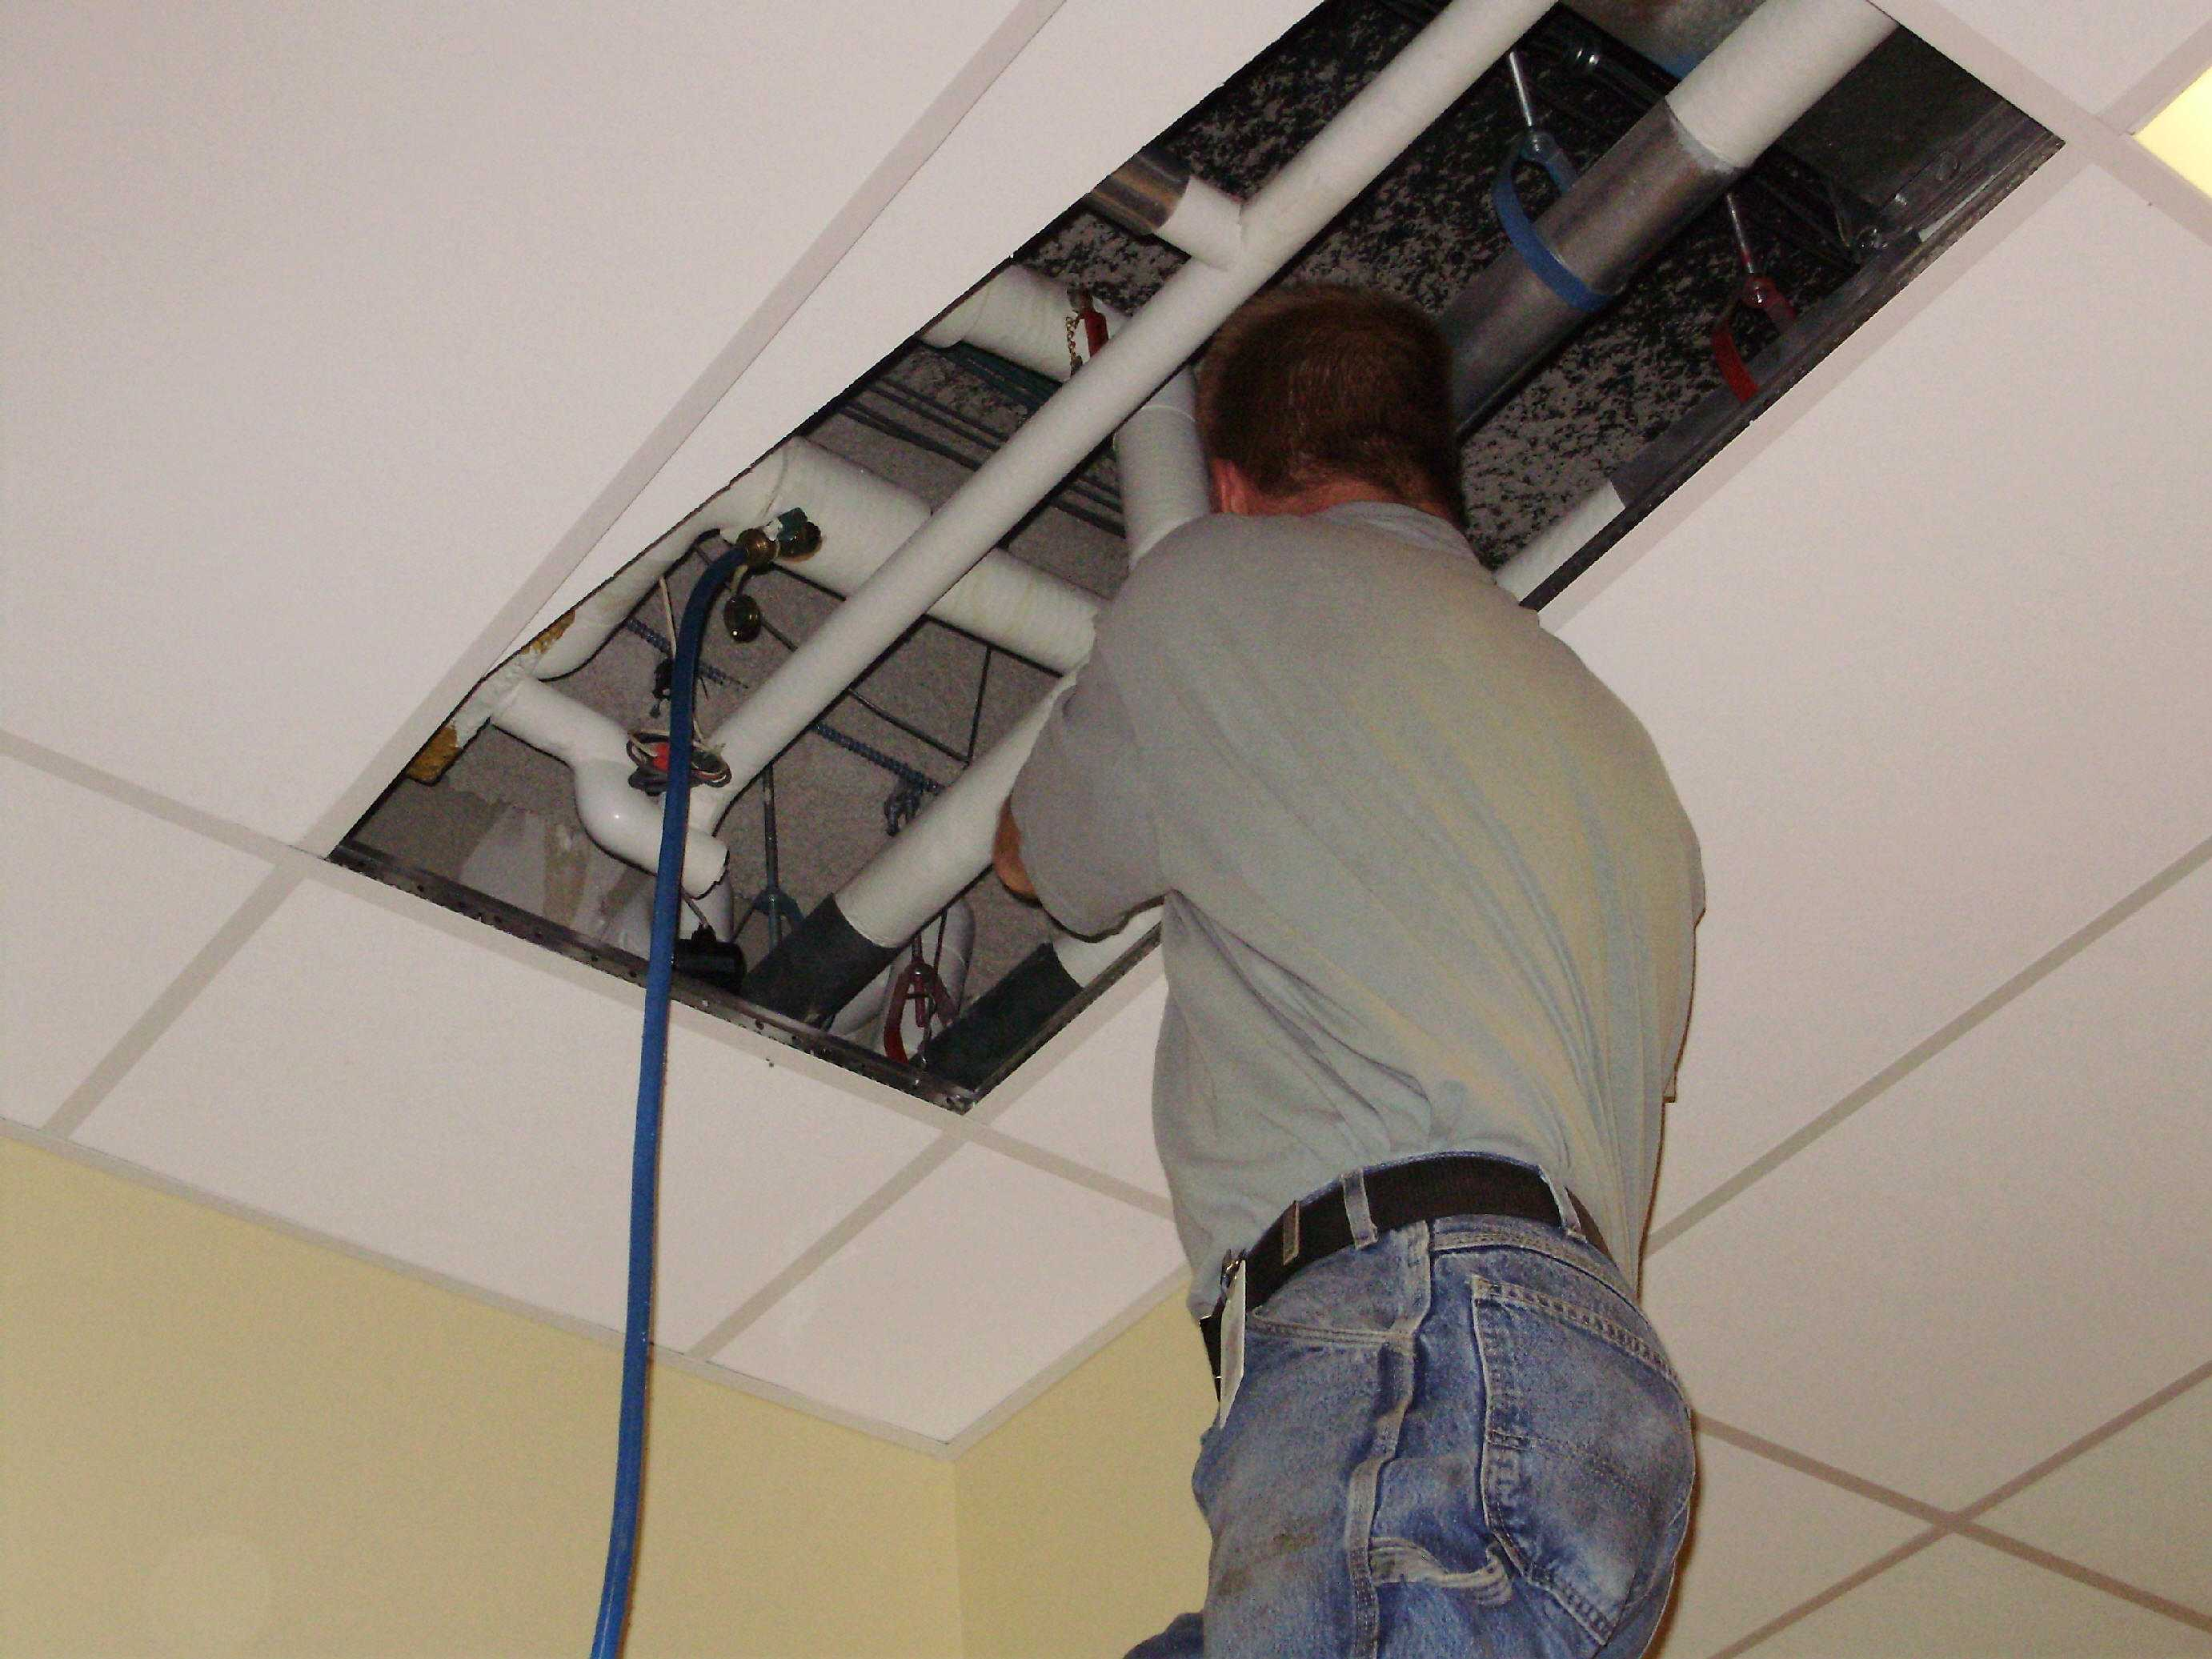 Continuing Problems With HVAC